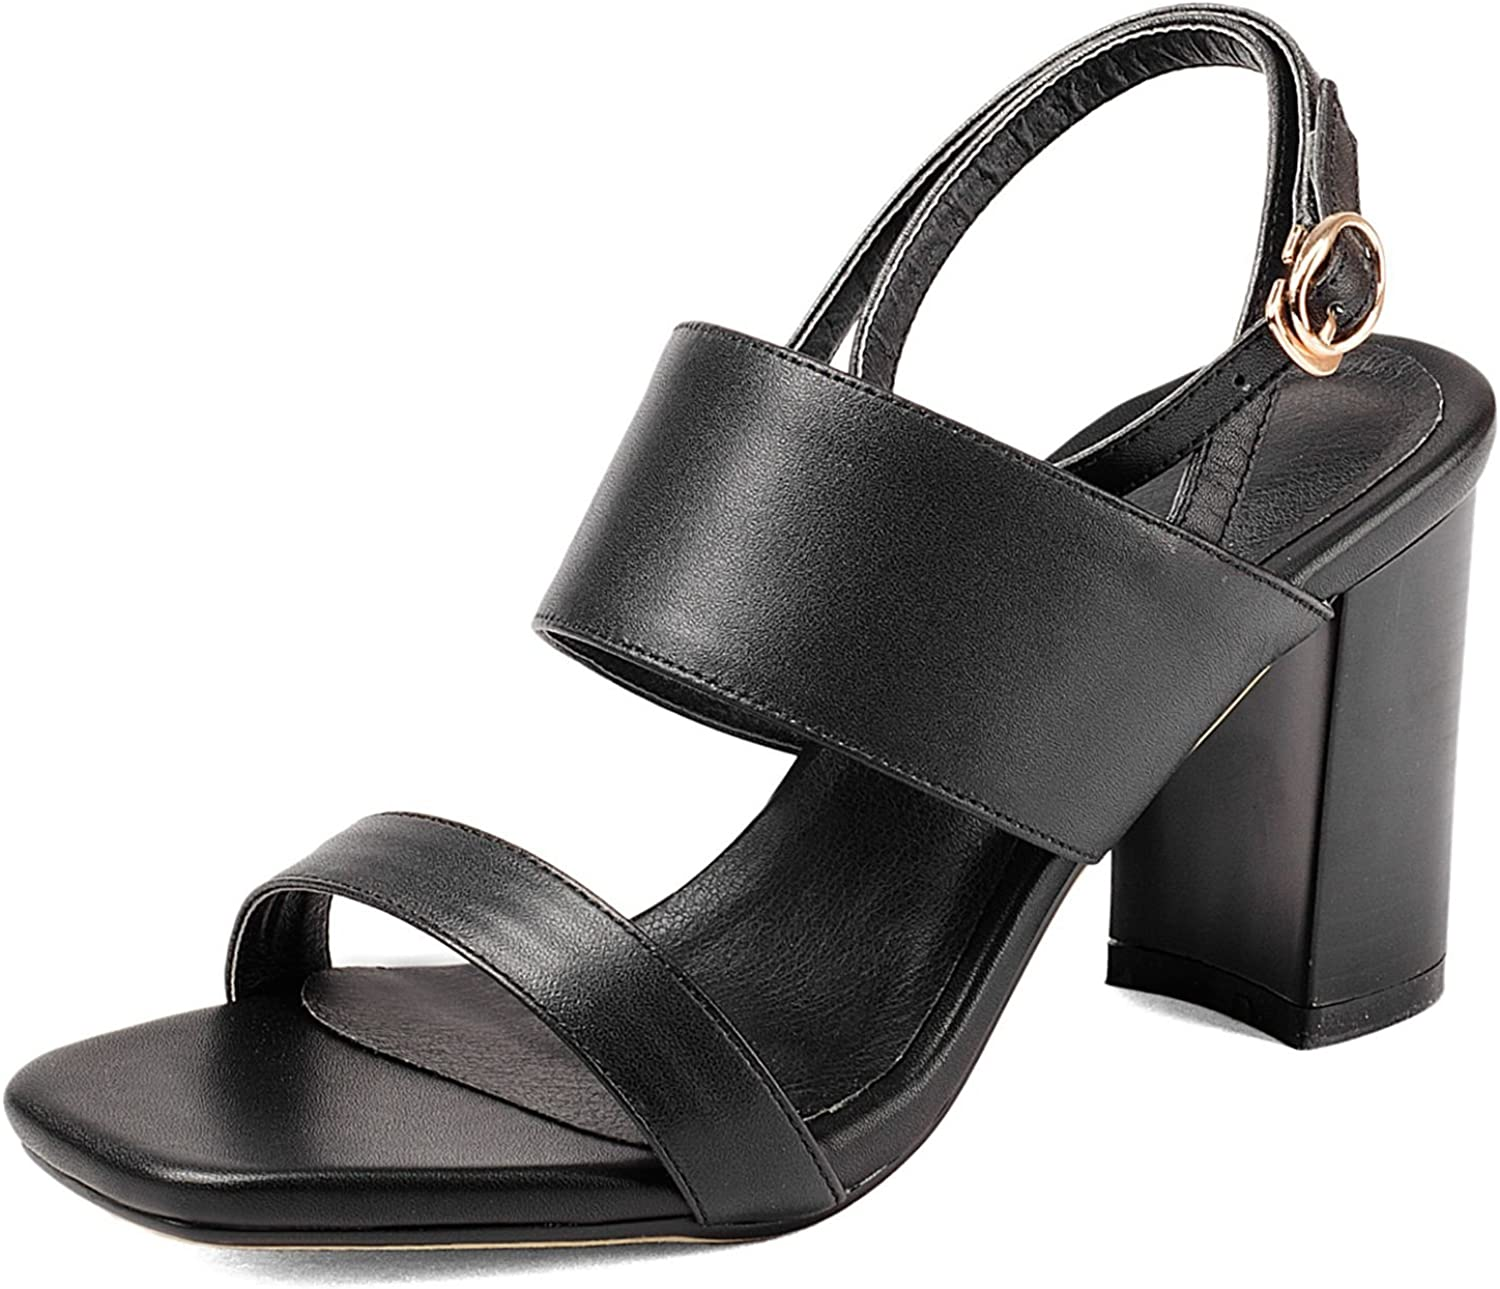 DoraTasia Women's Leather Square Toe Ankle Strap Buckle Open Toe Sandals Summer shoes